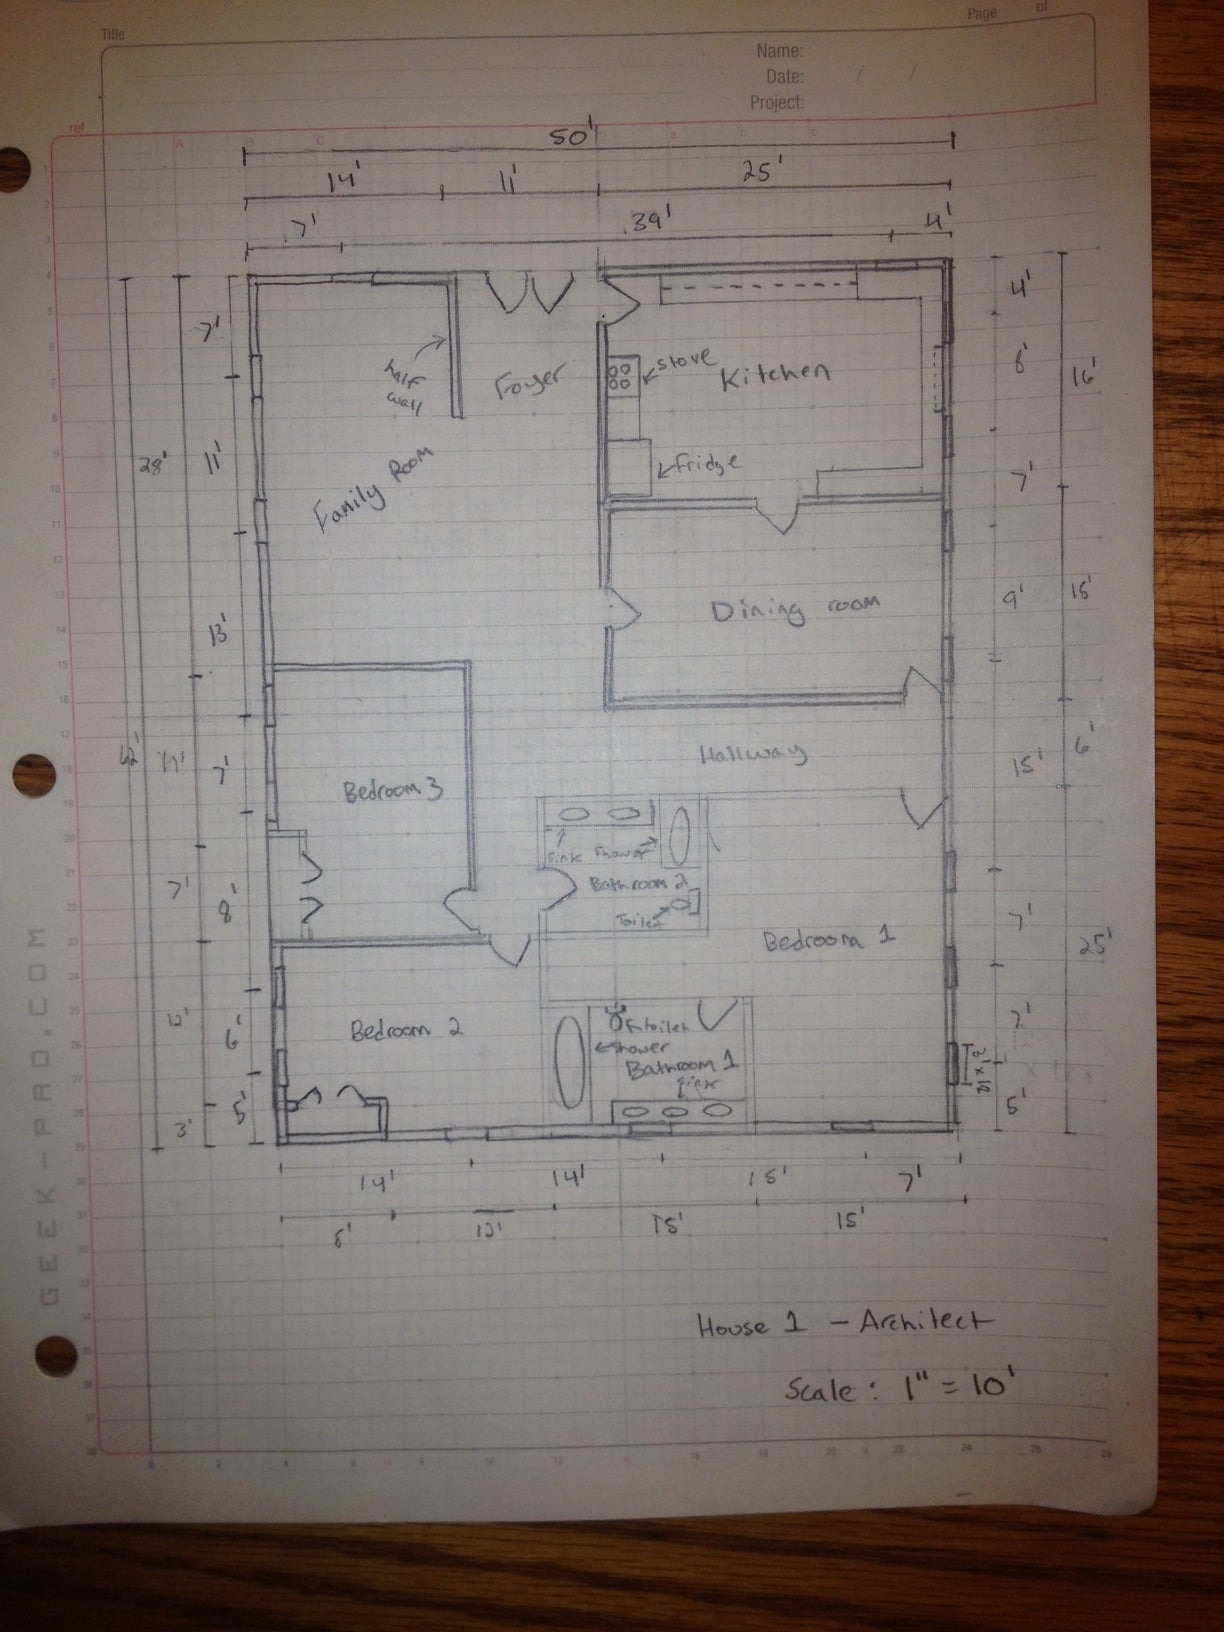 Drawing House Floor Plans: How To Manually Draft A Basic Floor Plan: 11 Steps